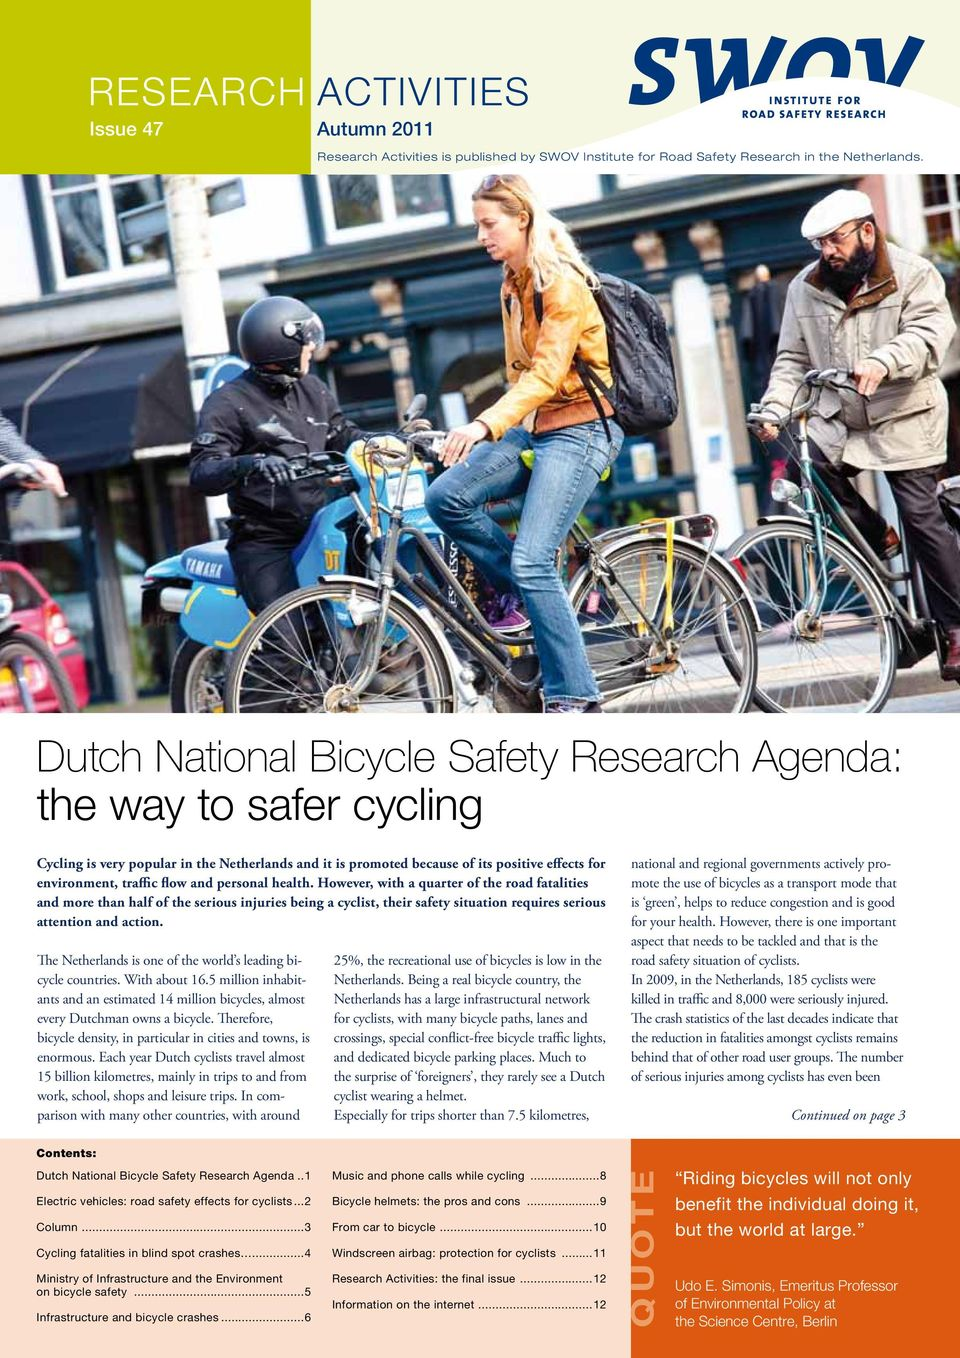 personal health. However, with a quarter of the road fatalities and more than half of the serious injuries being a cyclist, their safety situation requires serious attention and action.